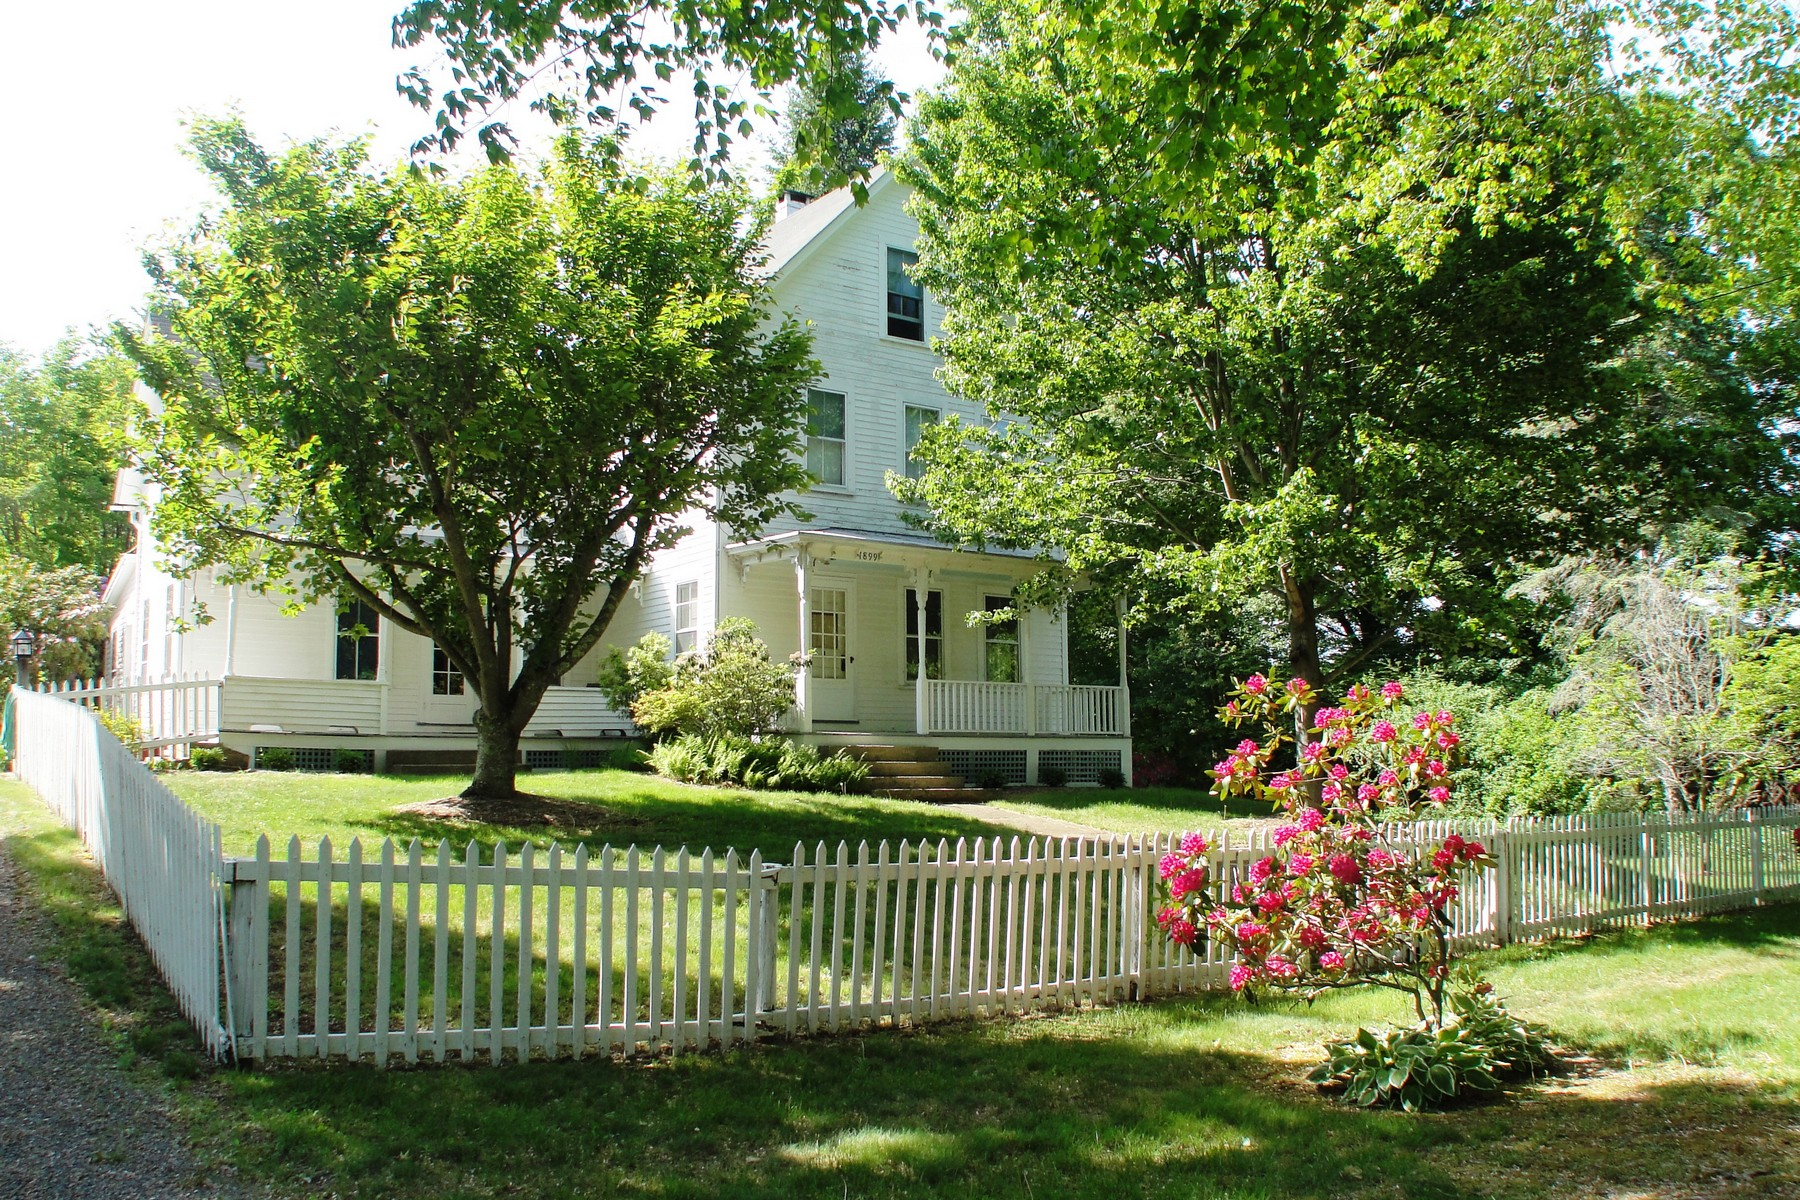 Single Family Home for Sale at Picturesque New England Farm 204 Route 32 Franklin, Connecticut 06254 United States